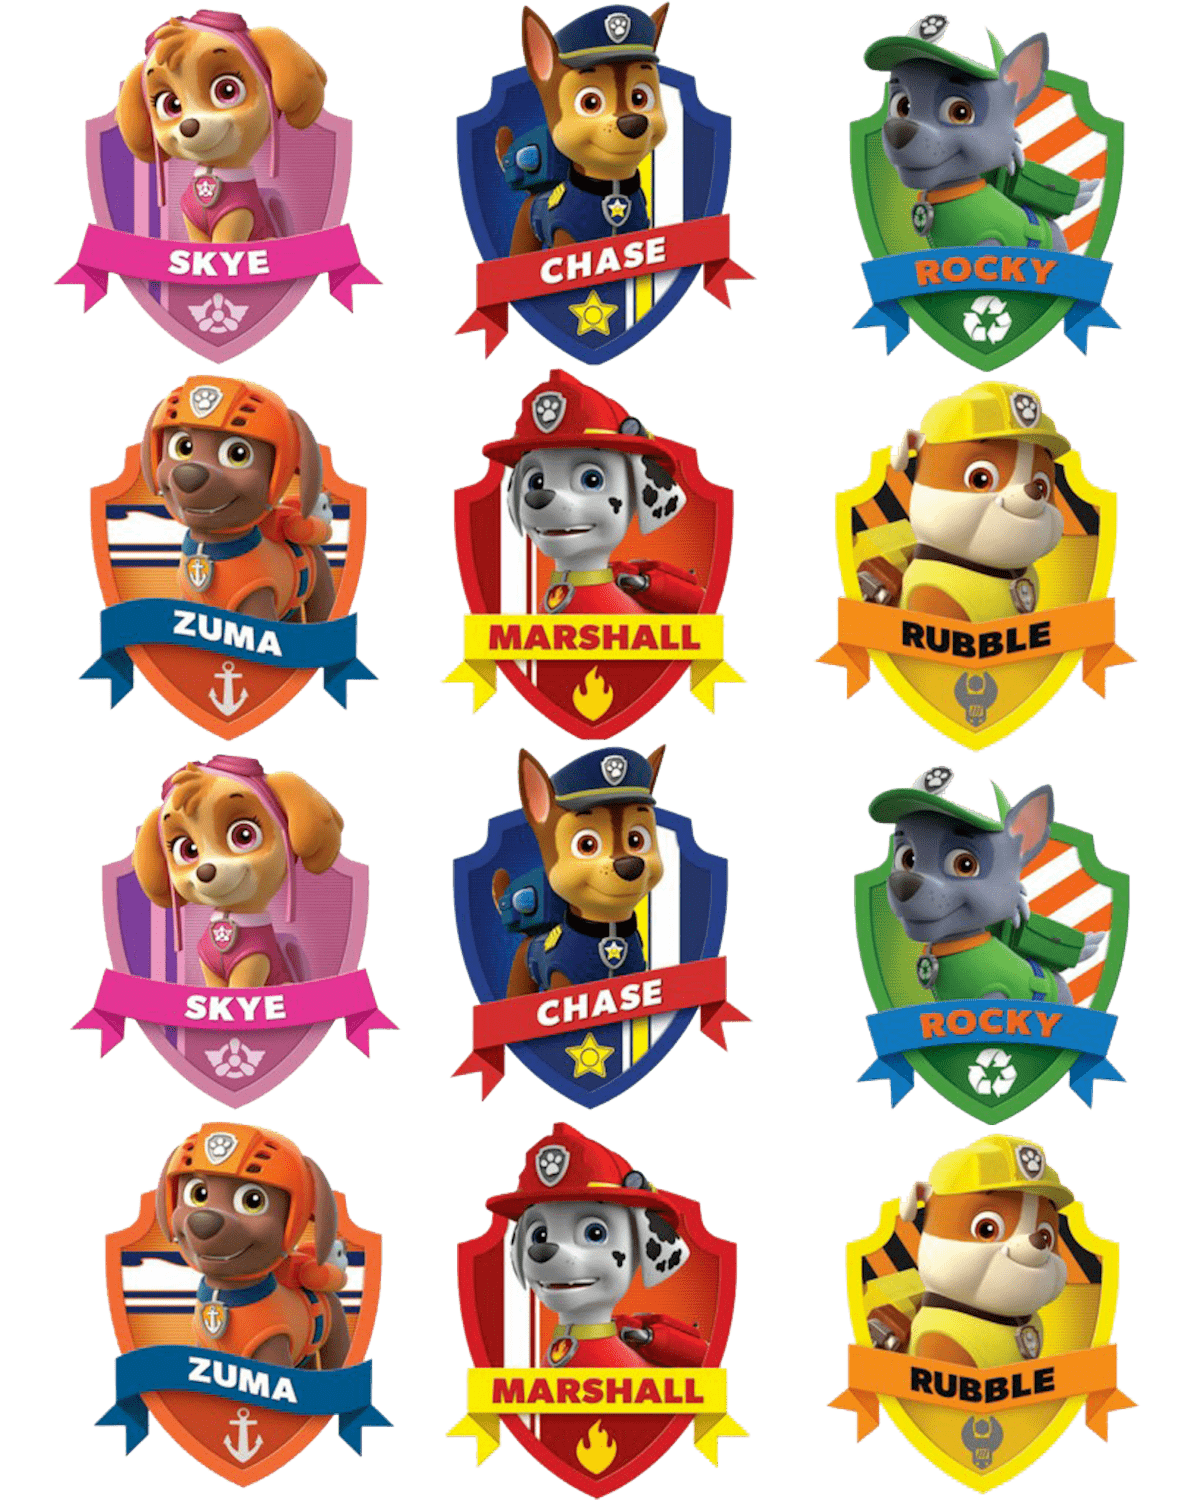 Paw patrol badges clipart clipart free stock Badges Paw Patrol Clipart Png clipart free stock